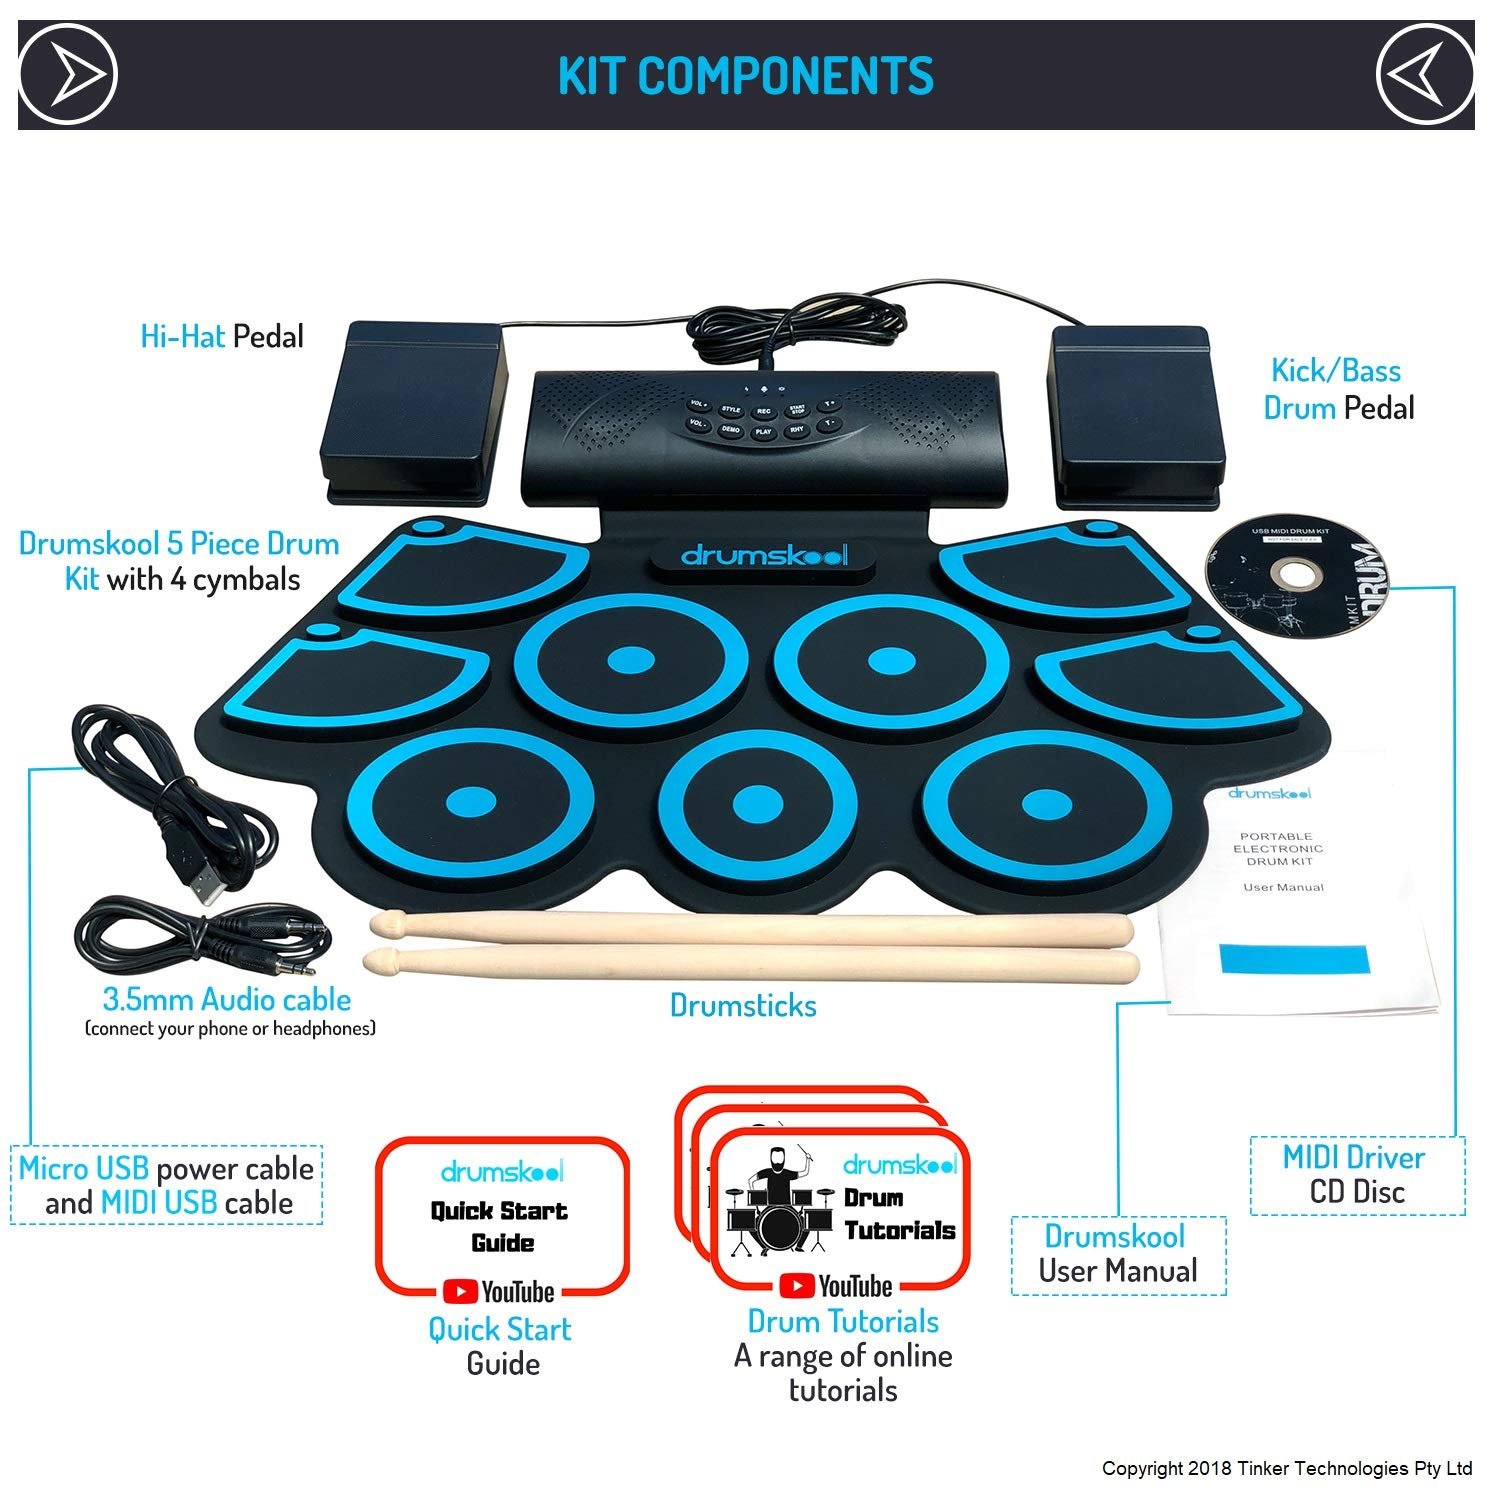 Drumskool Electronic Drum Set, MIDI Electric drum kit, Connect your phone to play along with included Drum Lessons, Speakers, Drum Pedals, Drum Sticks, 10 hours play time, Quickstart Guide by Drumskool (Image #7)